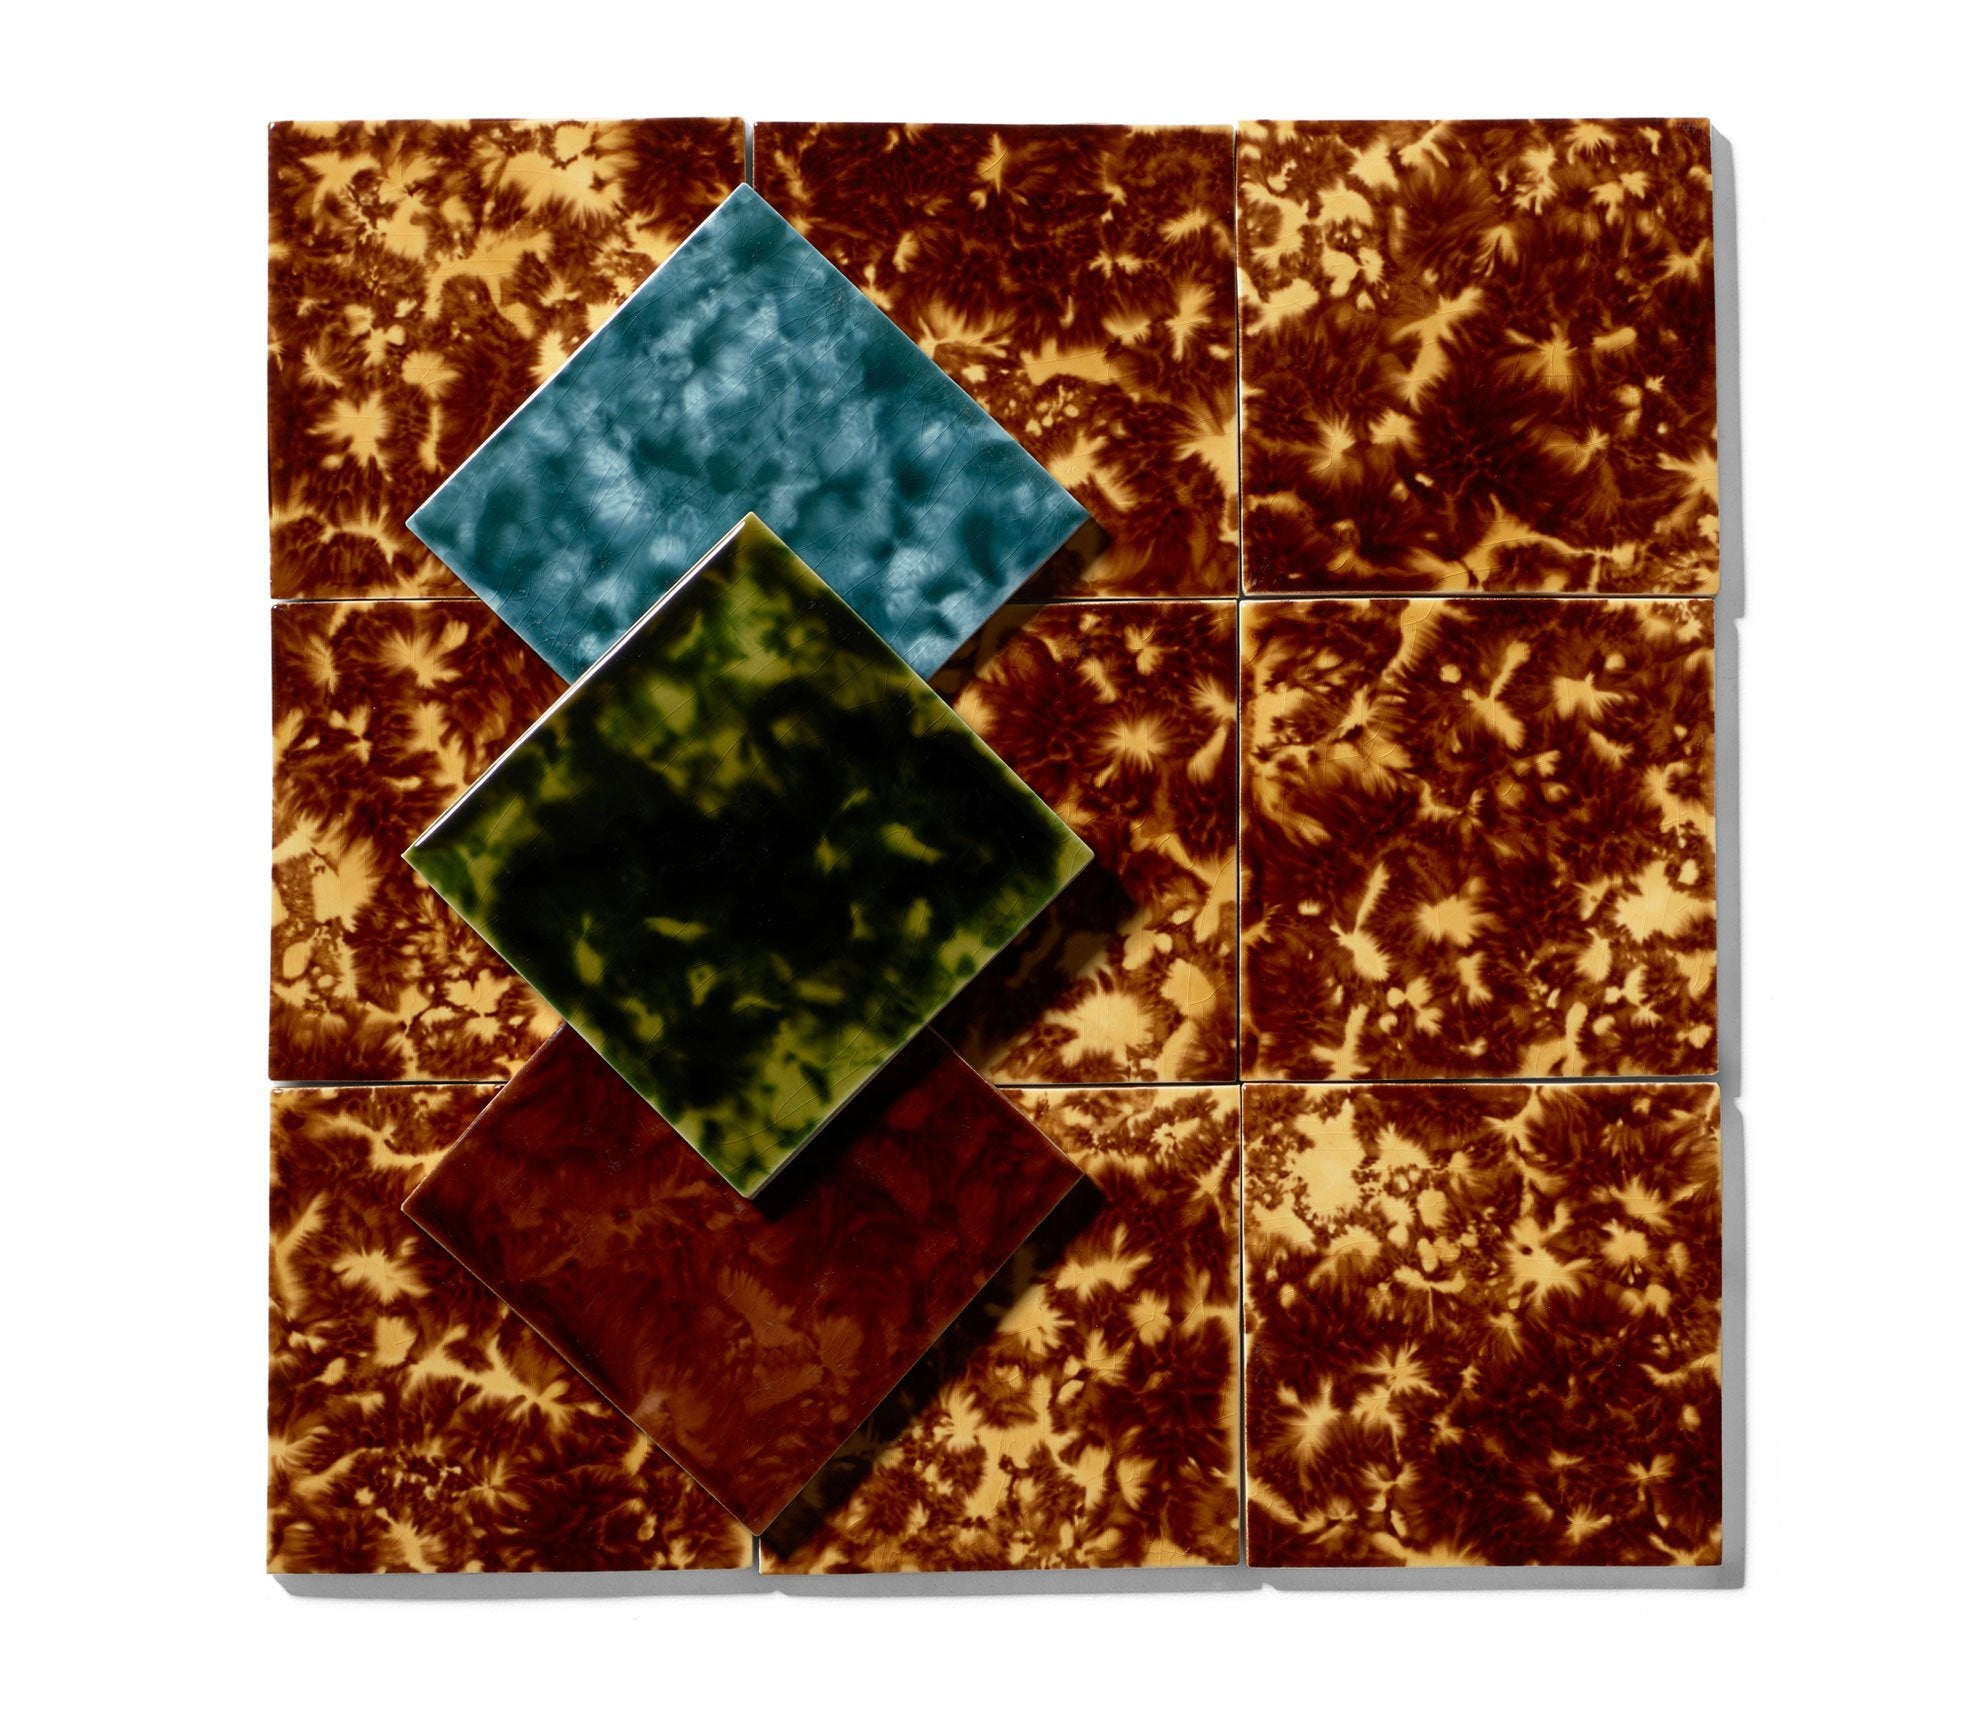 Mottled Tiles Product Image 3